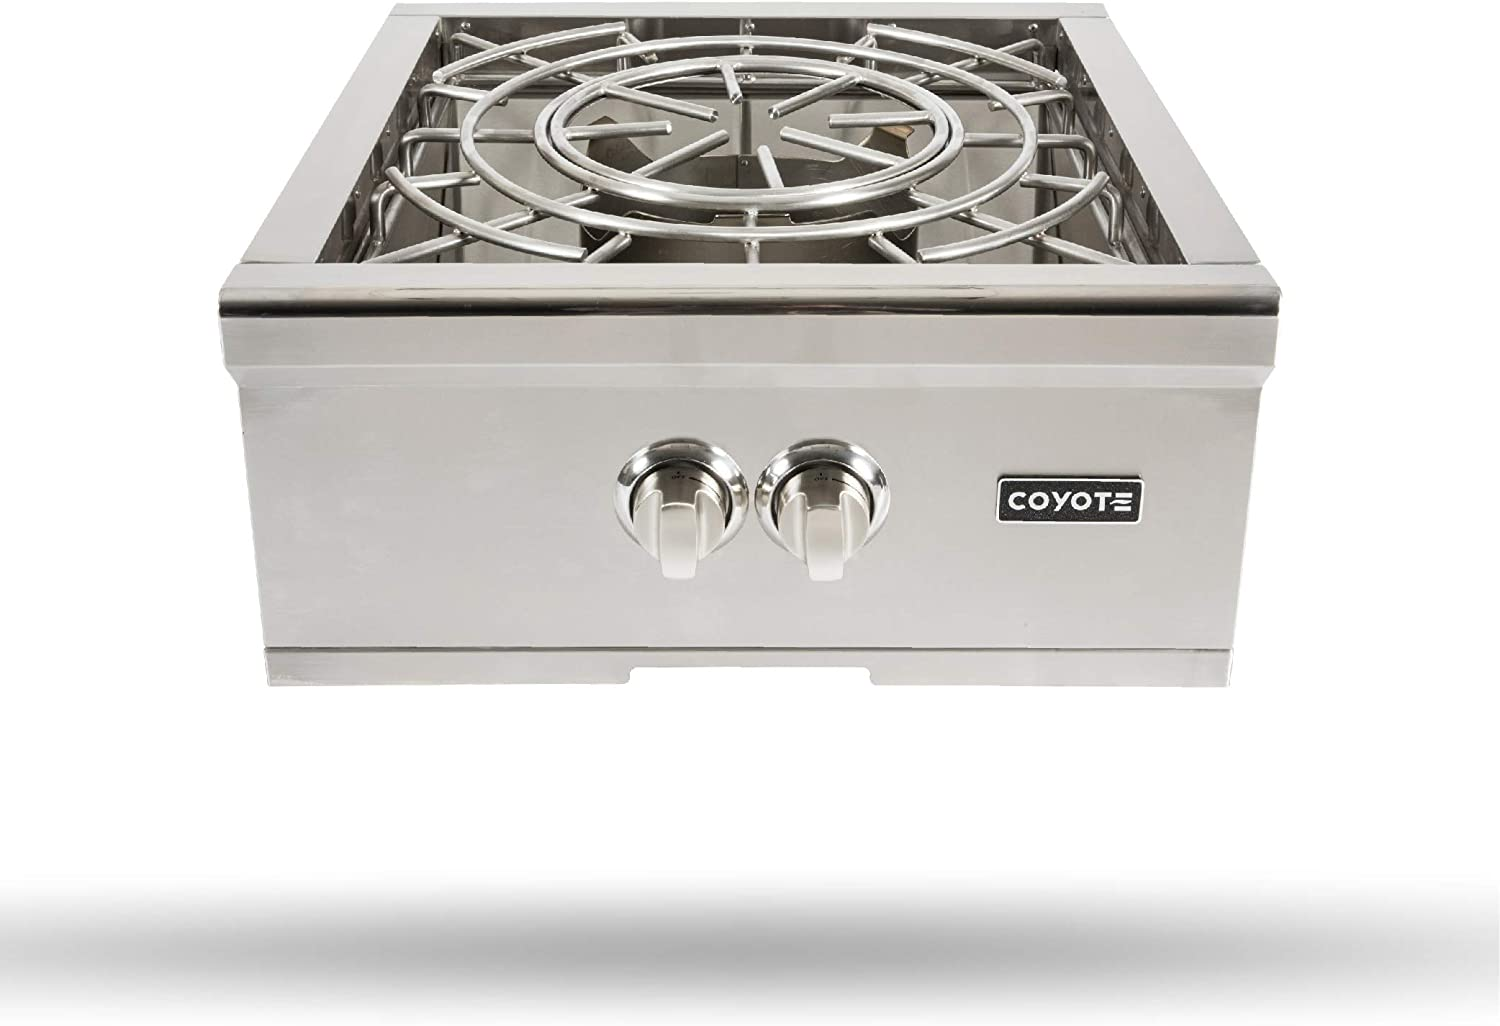 Coyote Built-In Propane OFFicial shop Gas - Power Max 70% OFF Burner C1PBLP